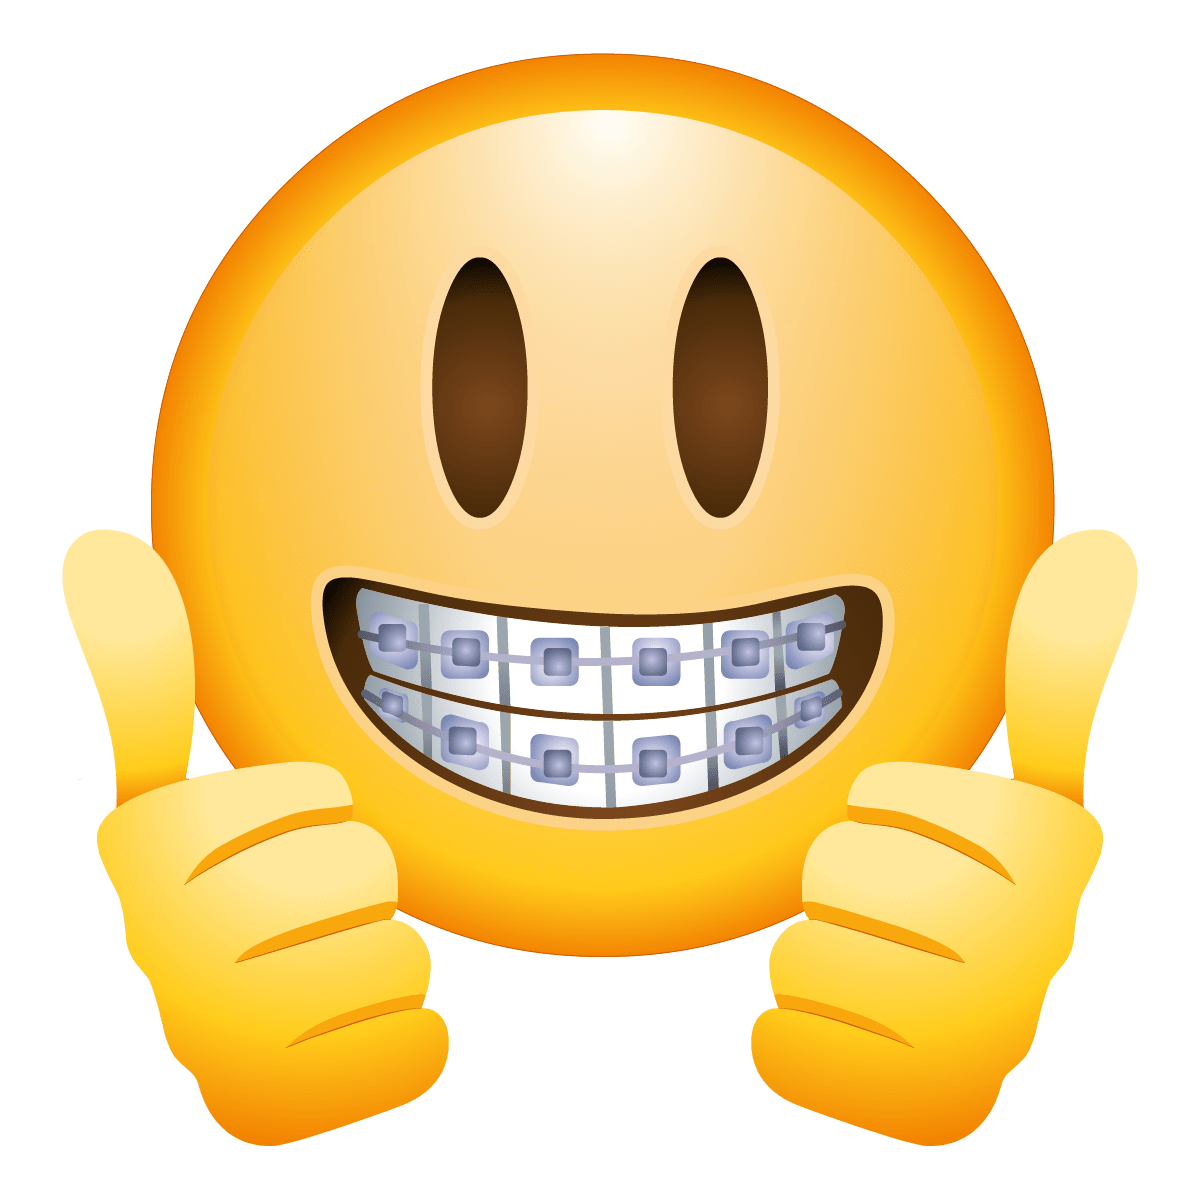 Emoji png. Braces face transparent stickpng